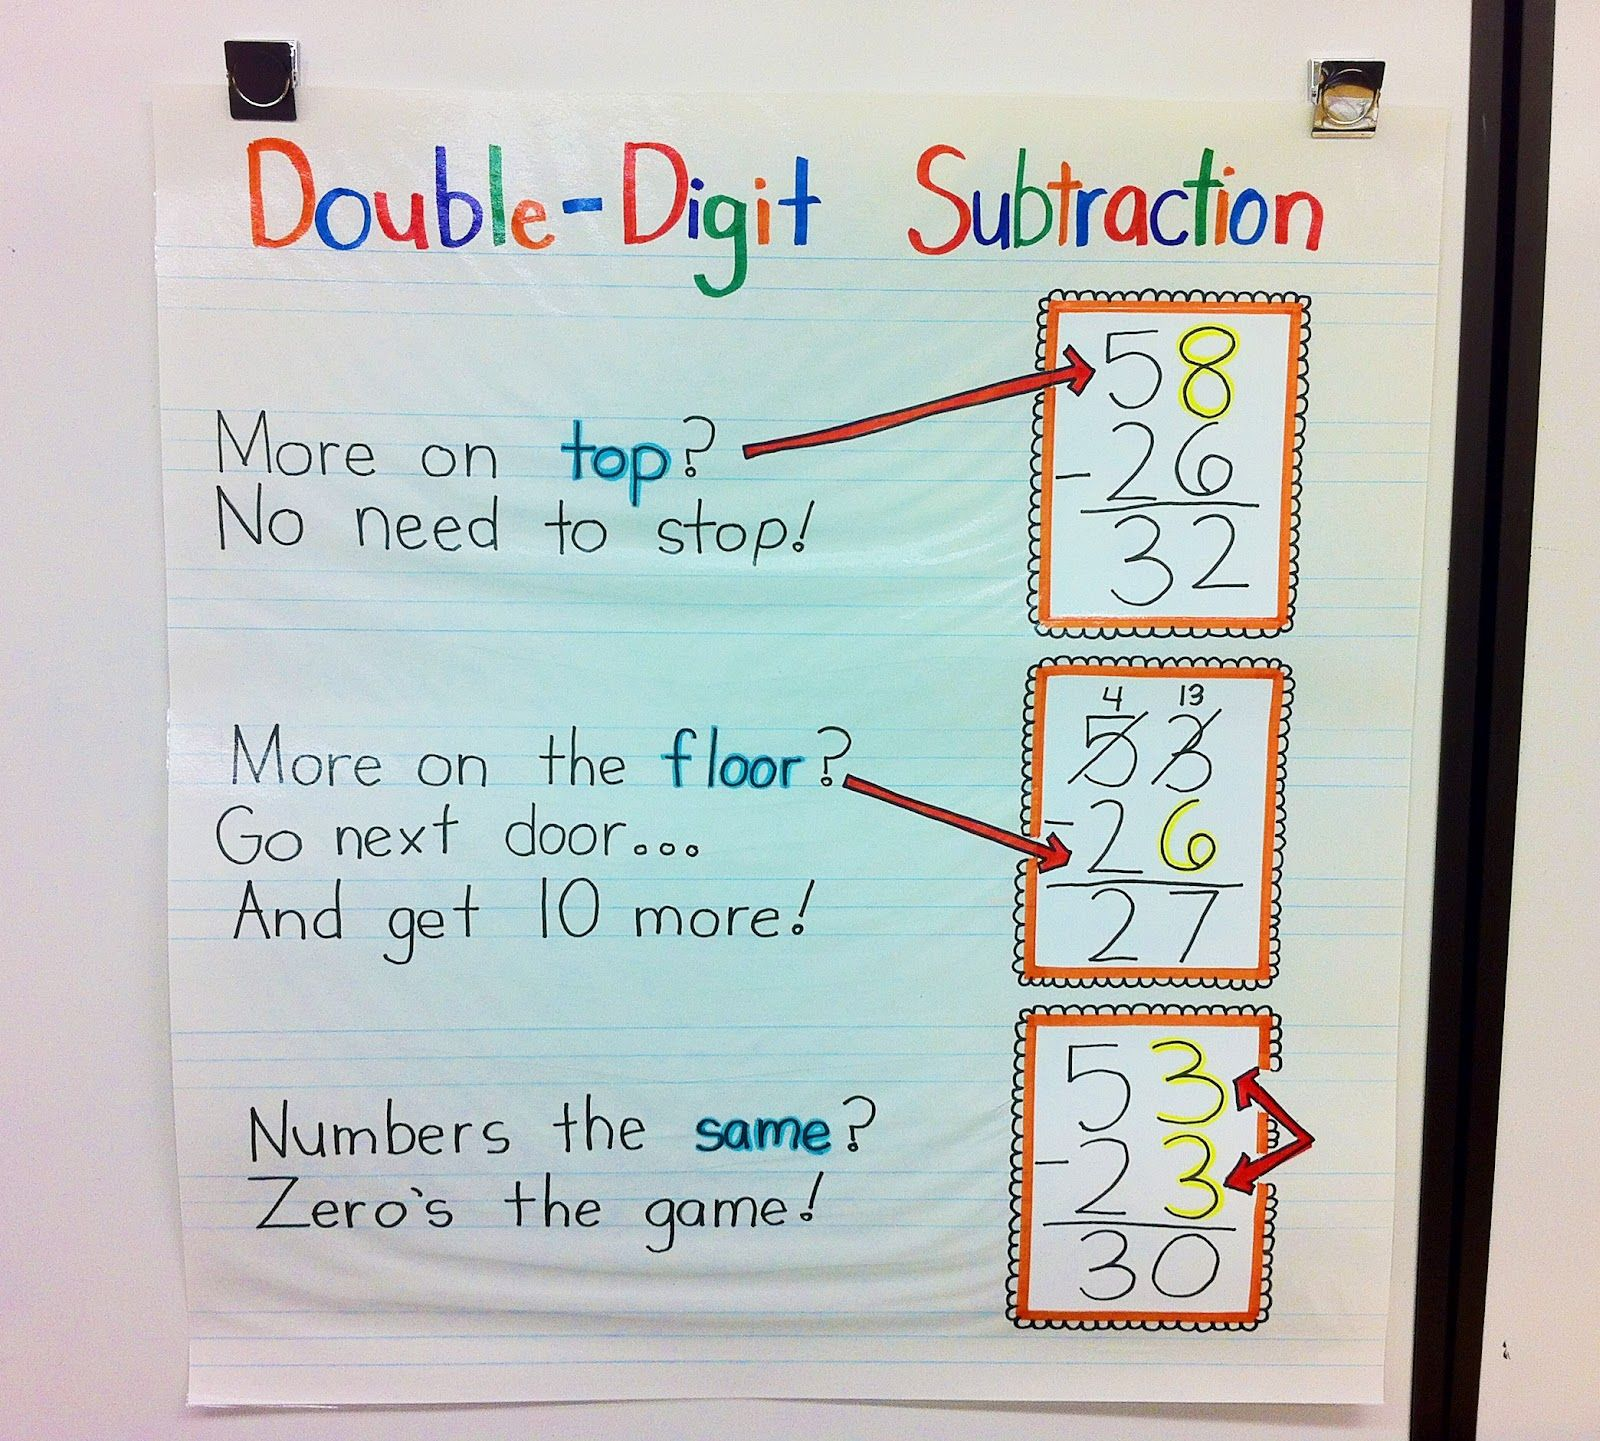 Pin By Alicia Beythan On Math 2mber And Operations